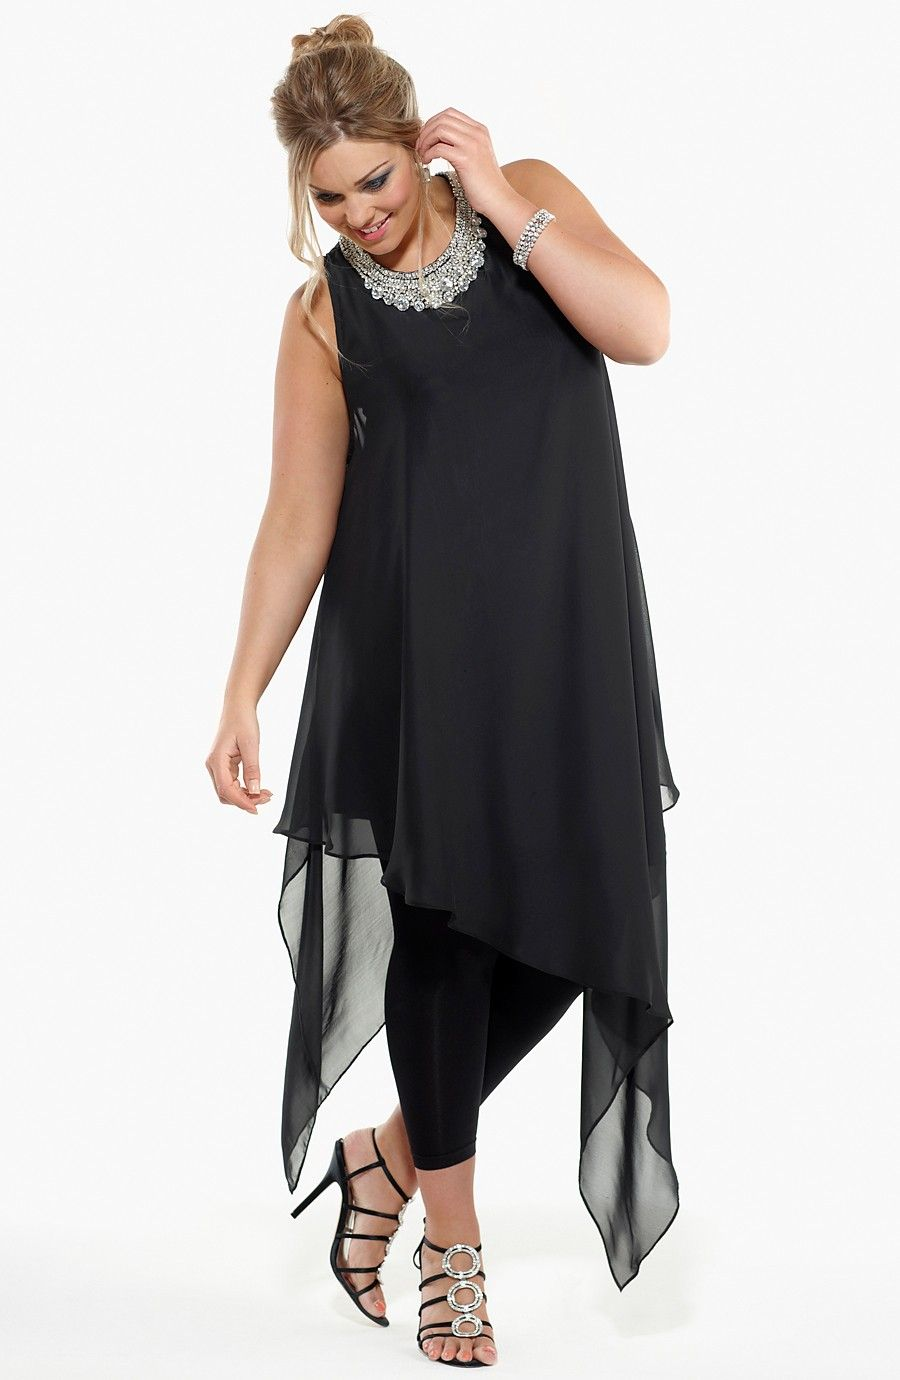 Evening dresses plus size australian